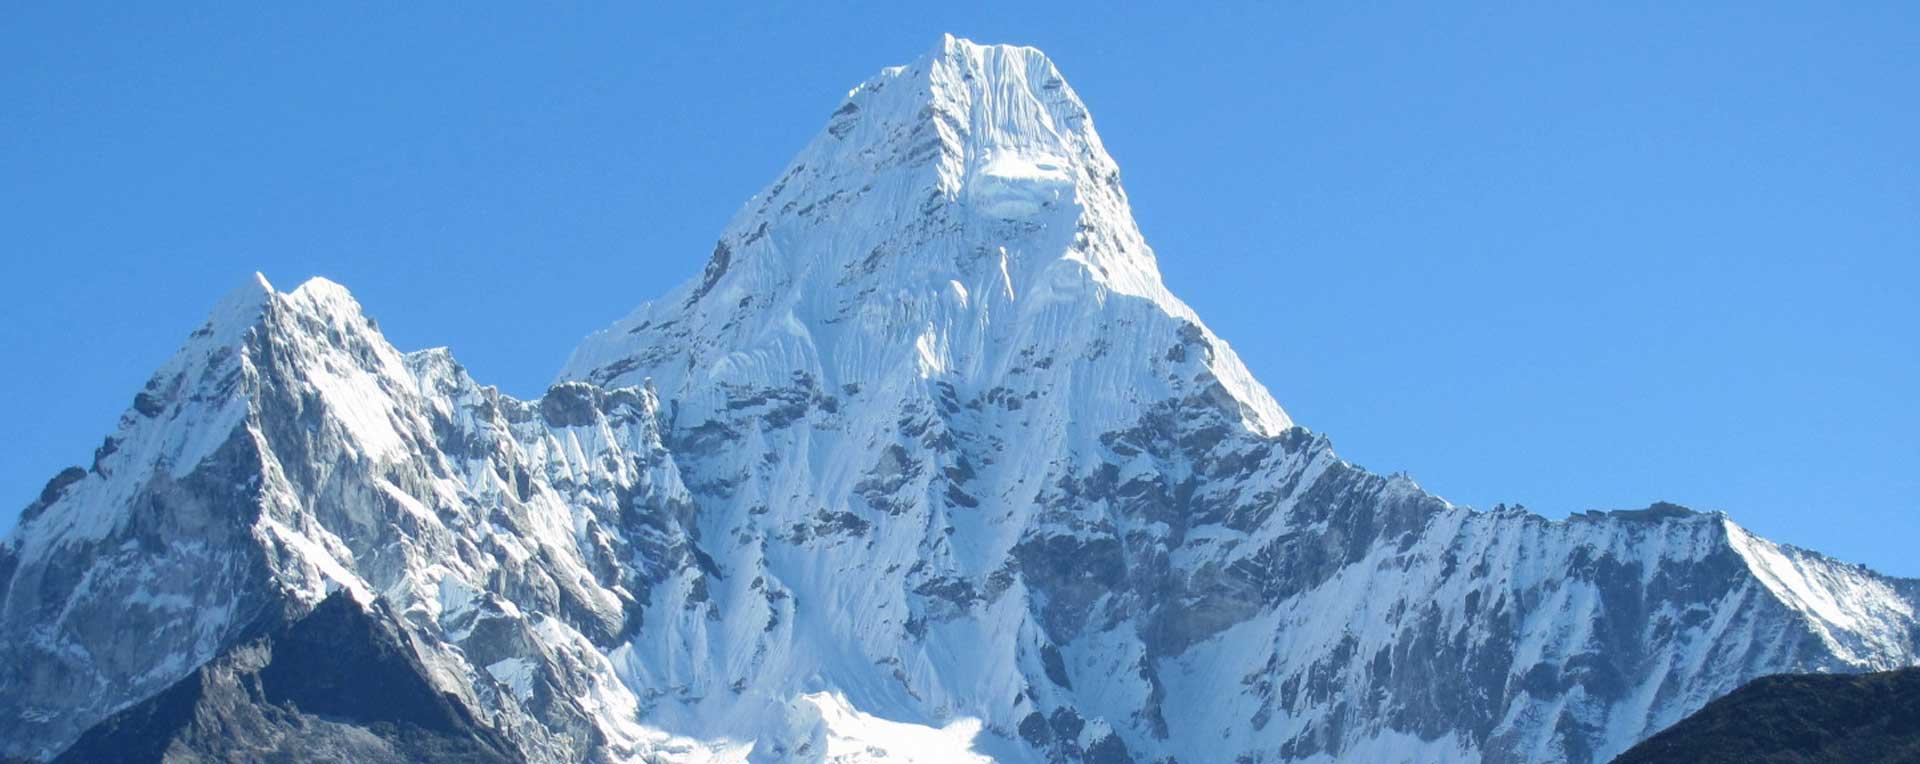 NEPAL Mountaineering - Ascent of Ama Dablam